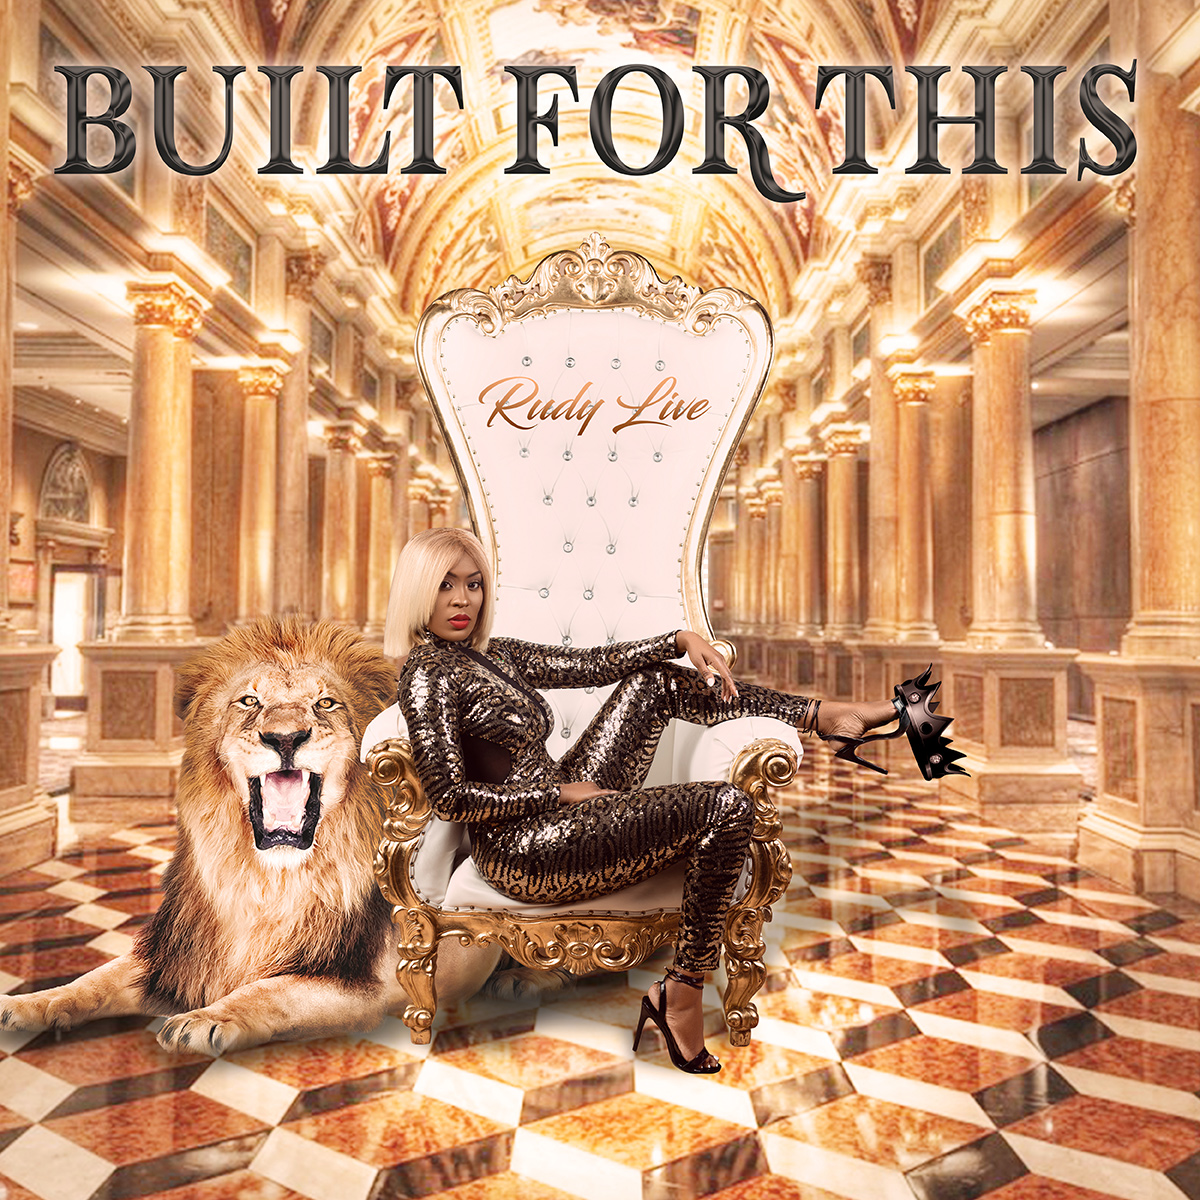 Rudy Live - Built for This